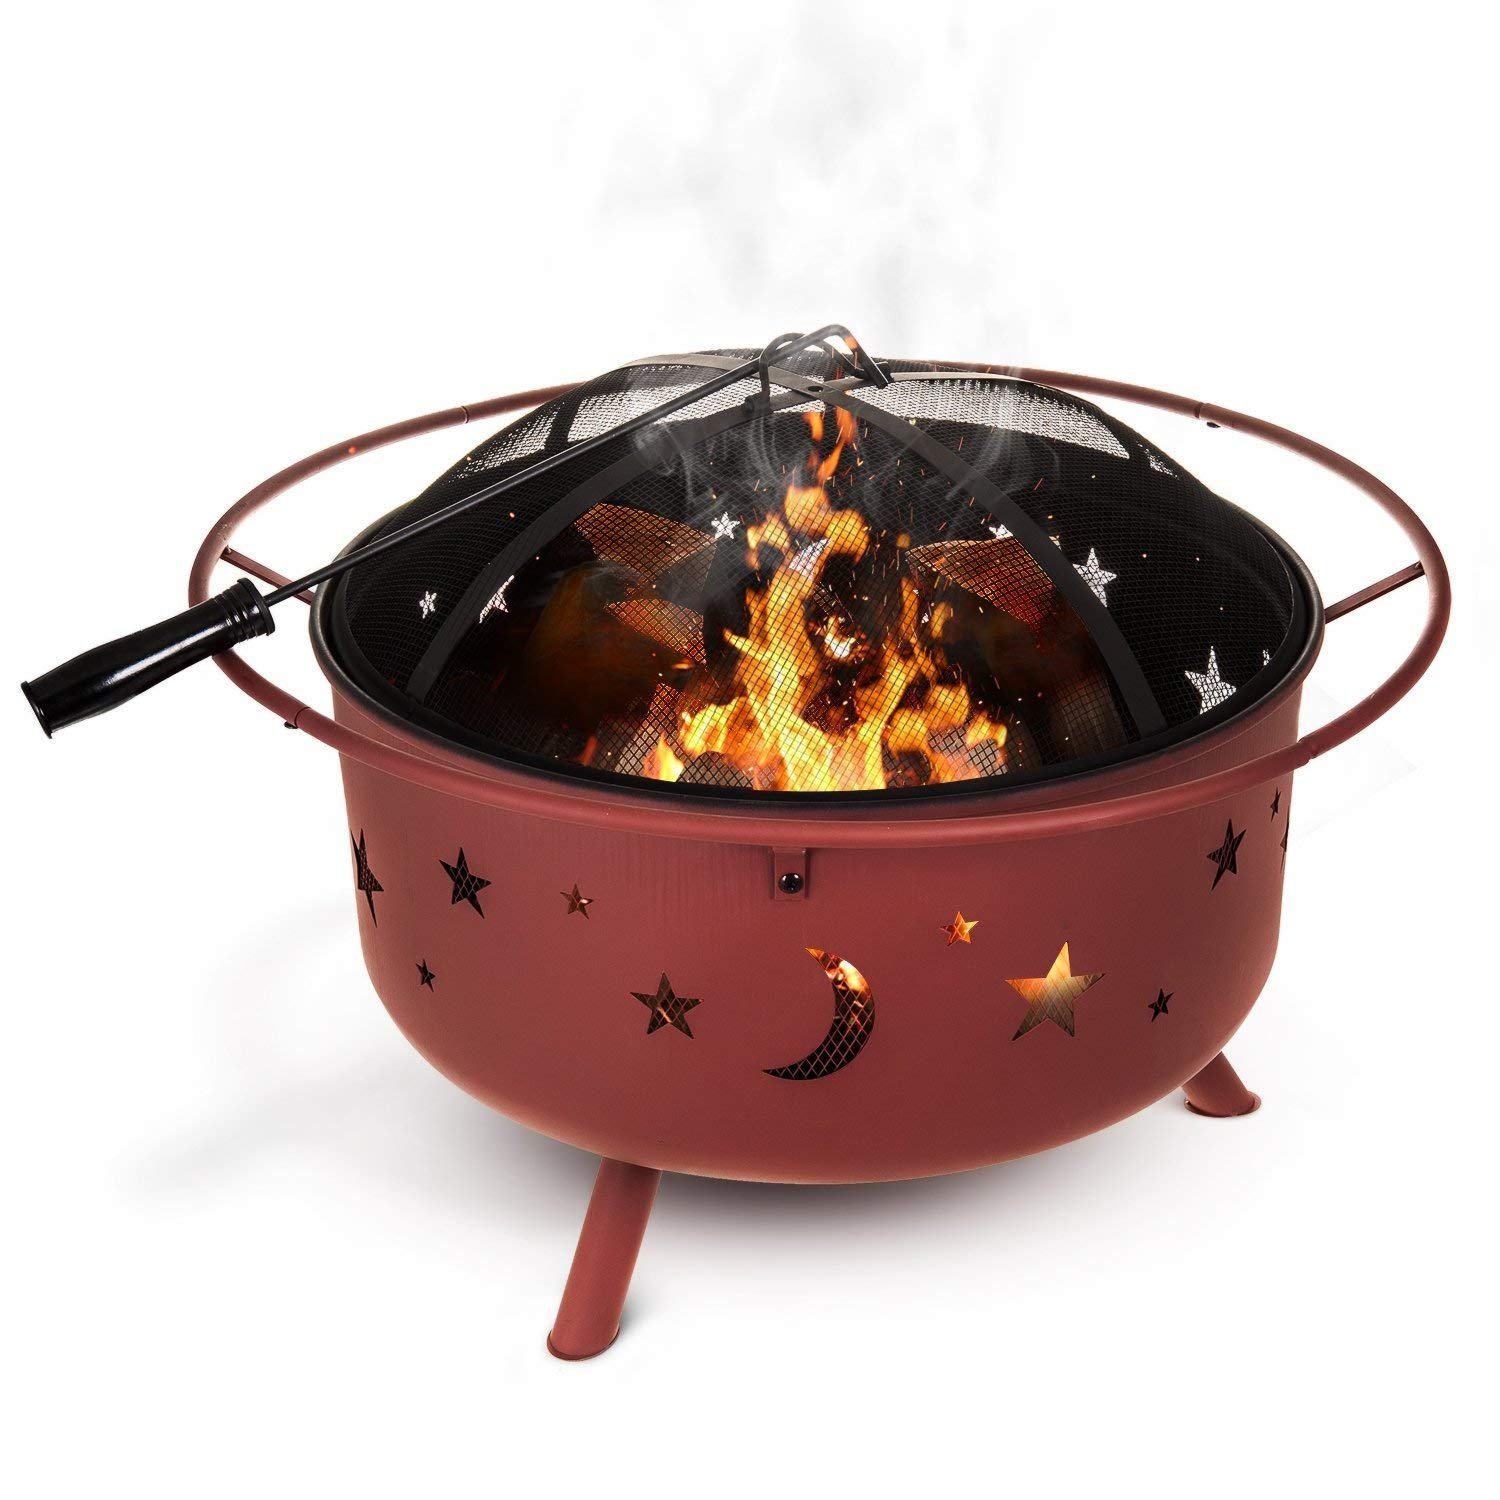 Fineway Stunning Firepit Fire Pit Bowl Basket Patio Heater Log Burner With Spark Guard, Poker Stick And Cover - Garden Outdoor Camping - For Logs and Charcoal - Moon and Stars Finish with Waterproof Cover Fineway.